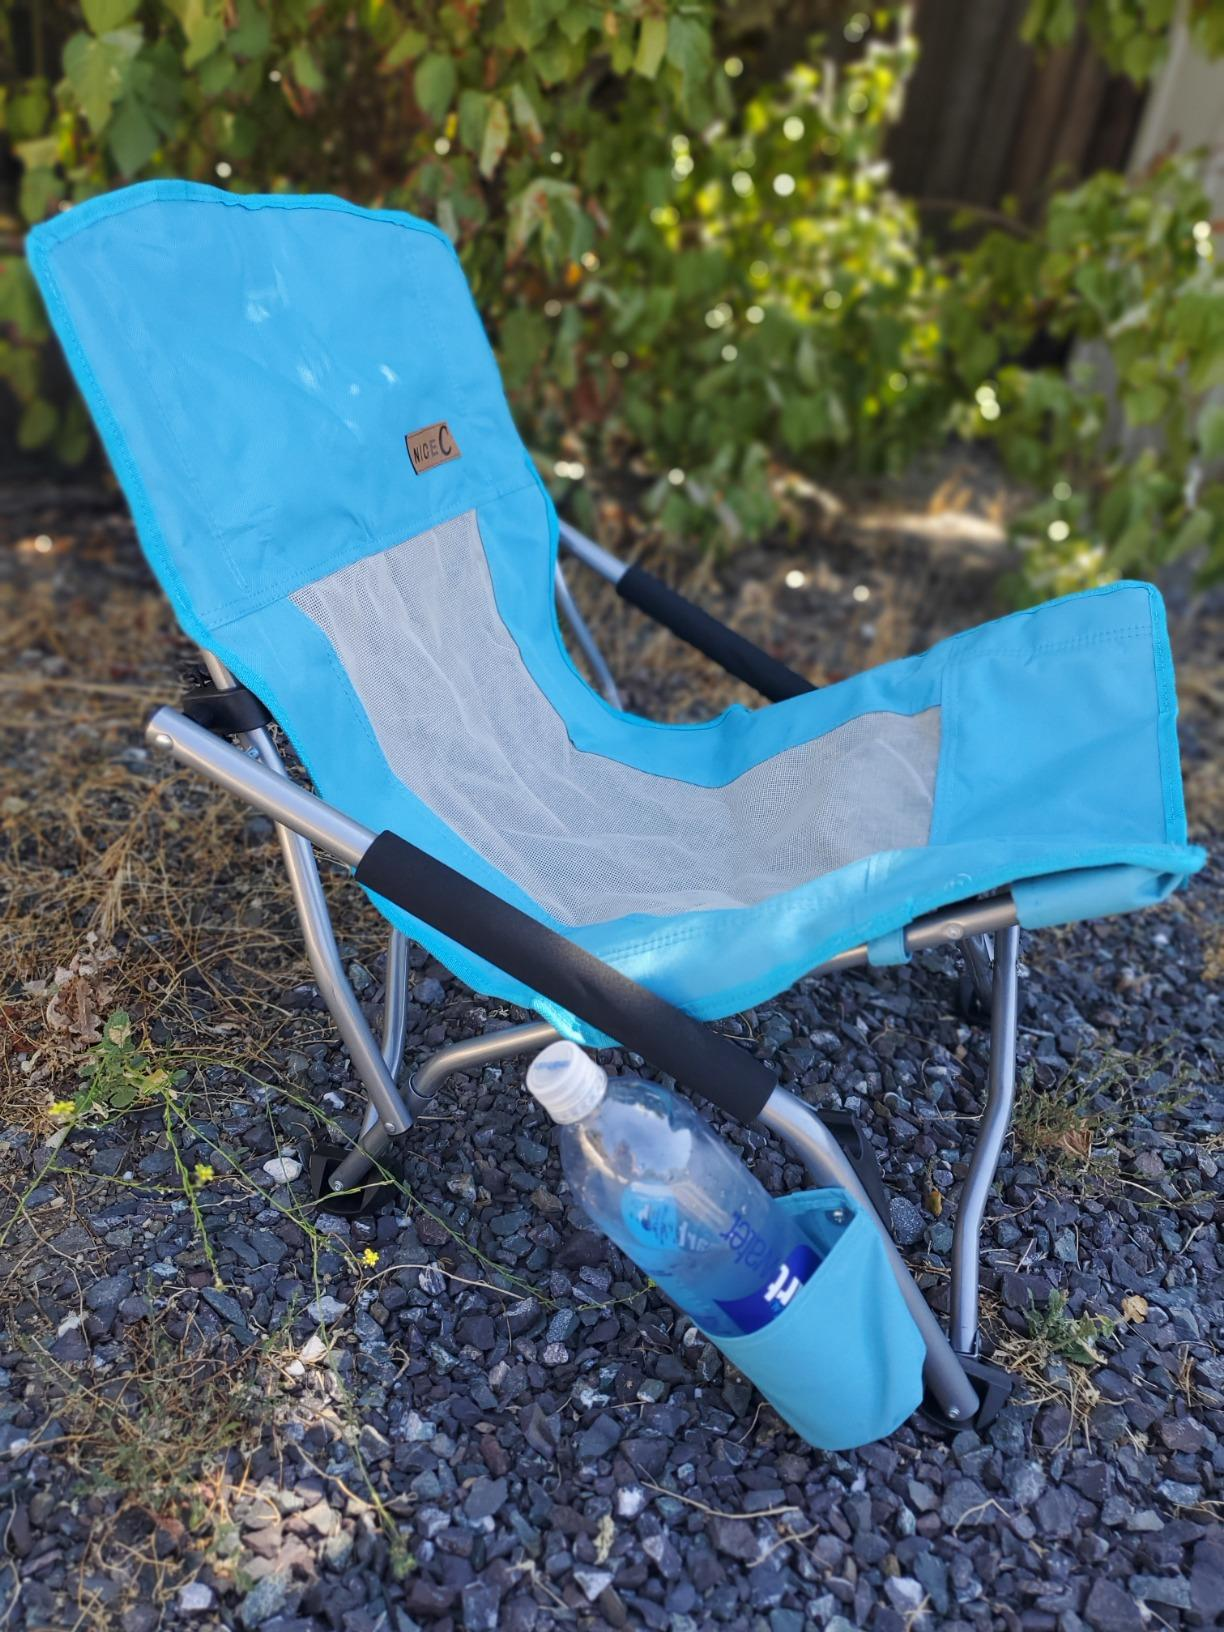 Nice C Low Beach Camping Folding Chair, Ultralight Backpacking Chair with Cup Holder & Carry Bag Compact & Heavy Duty Outdoor, Camping, BBQ, Beach, Travel, Picnic, Festival photo review